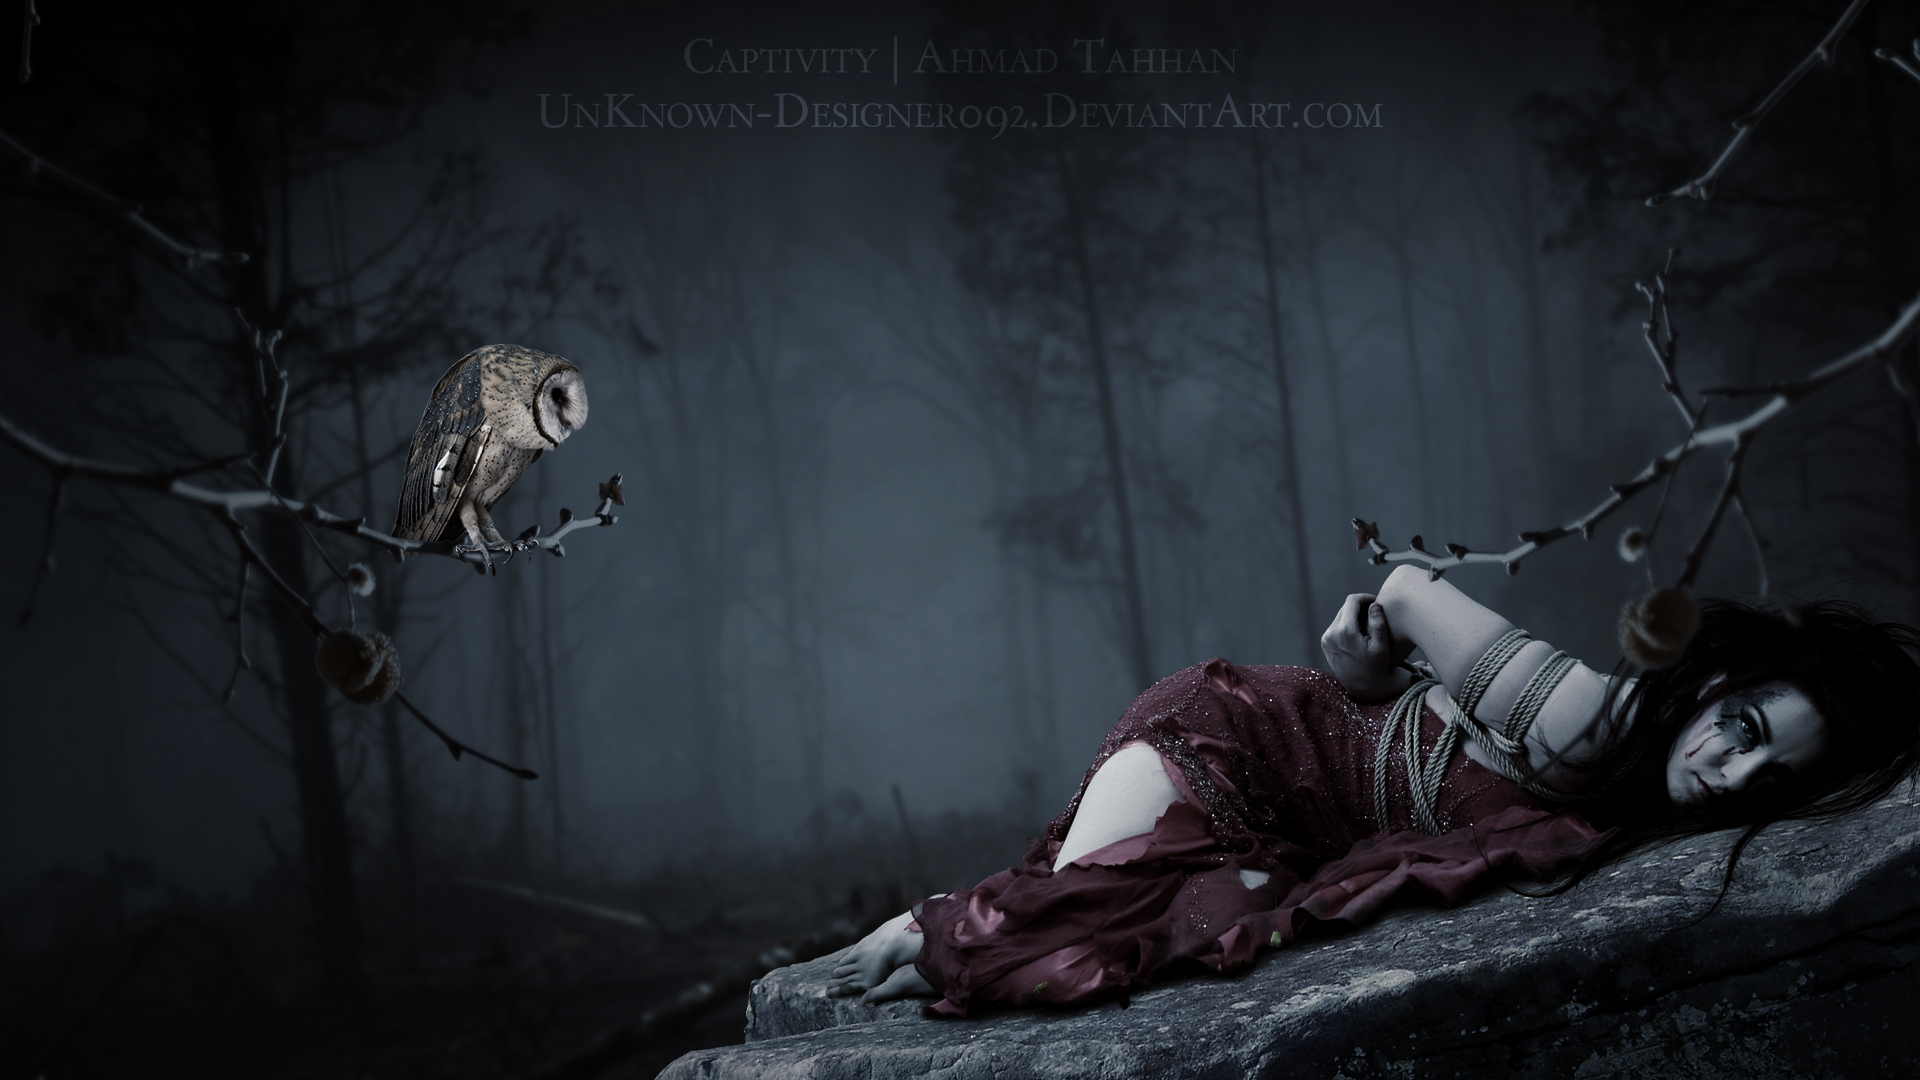 Captivity by UnKnown-Designer092